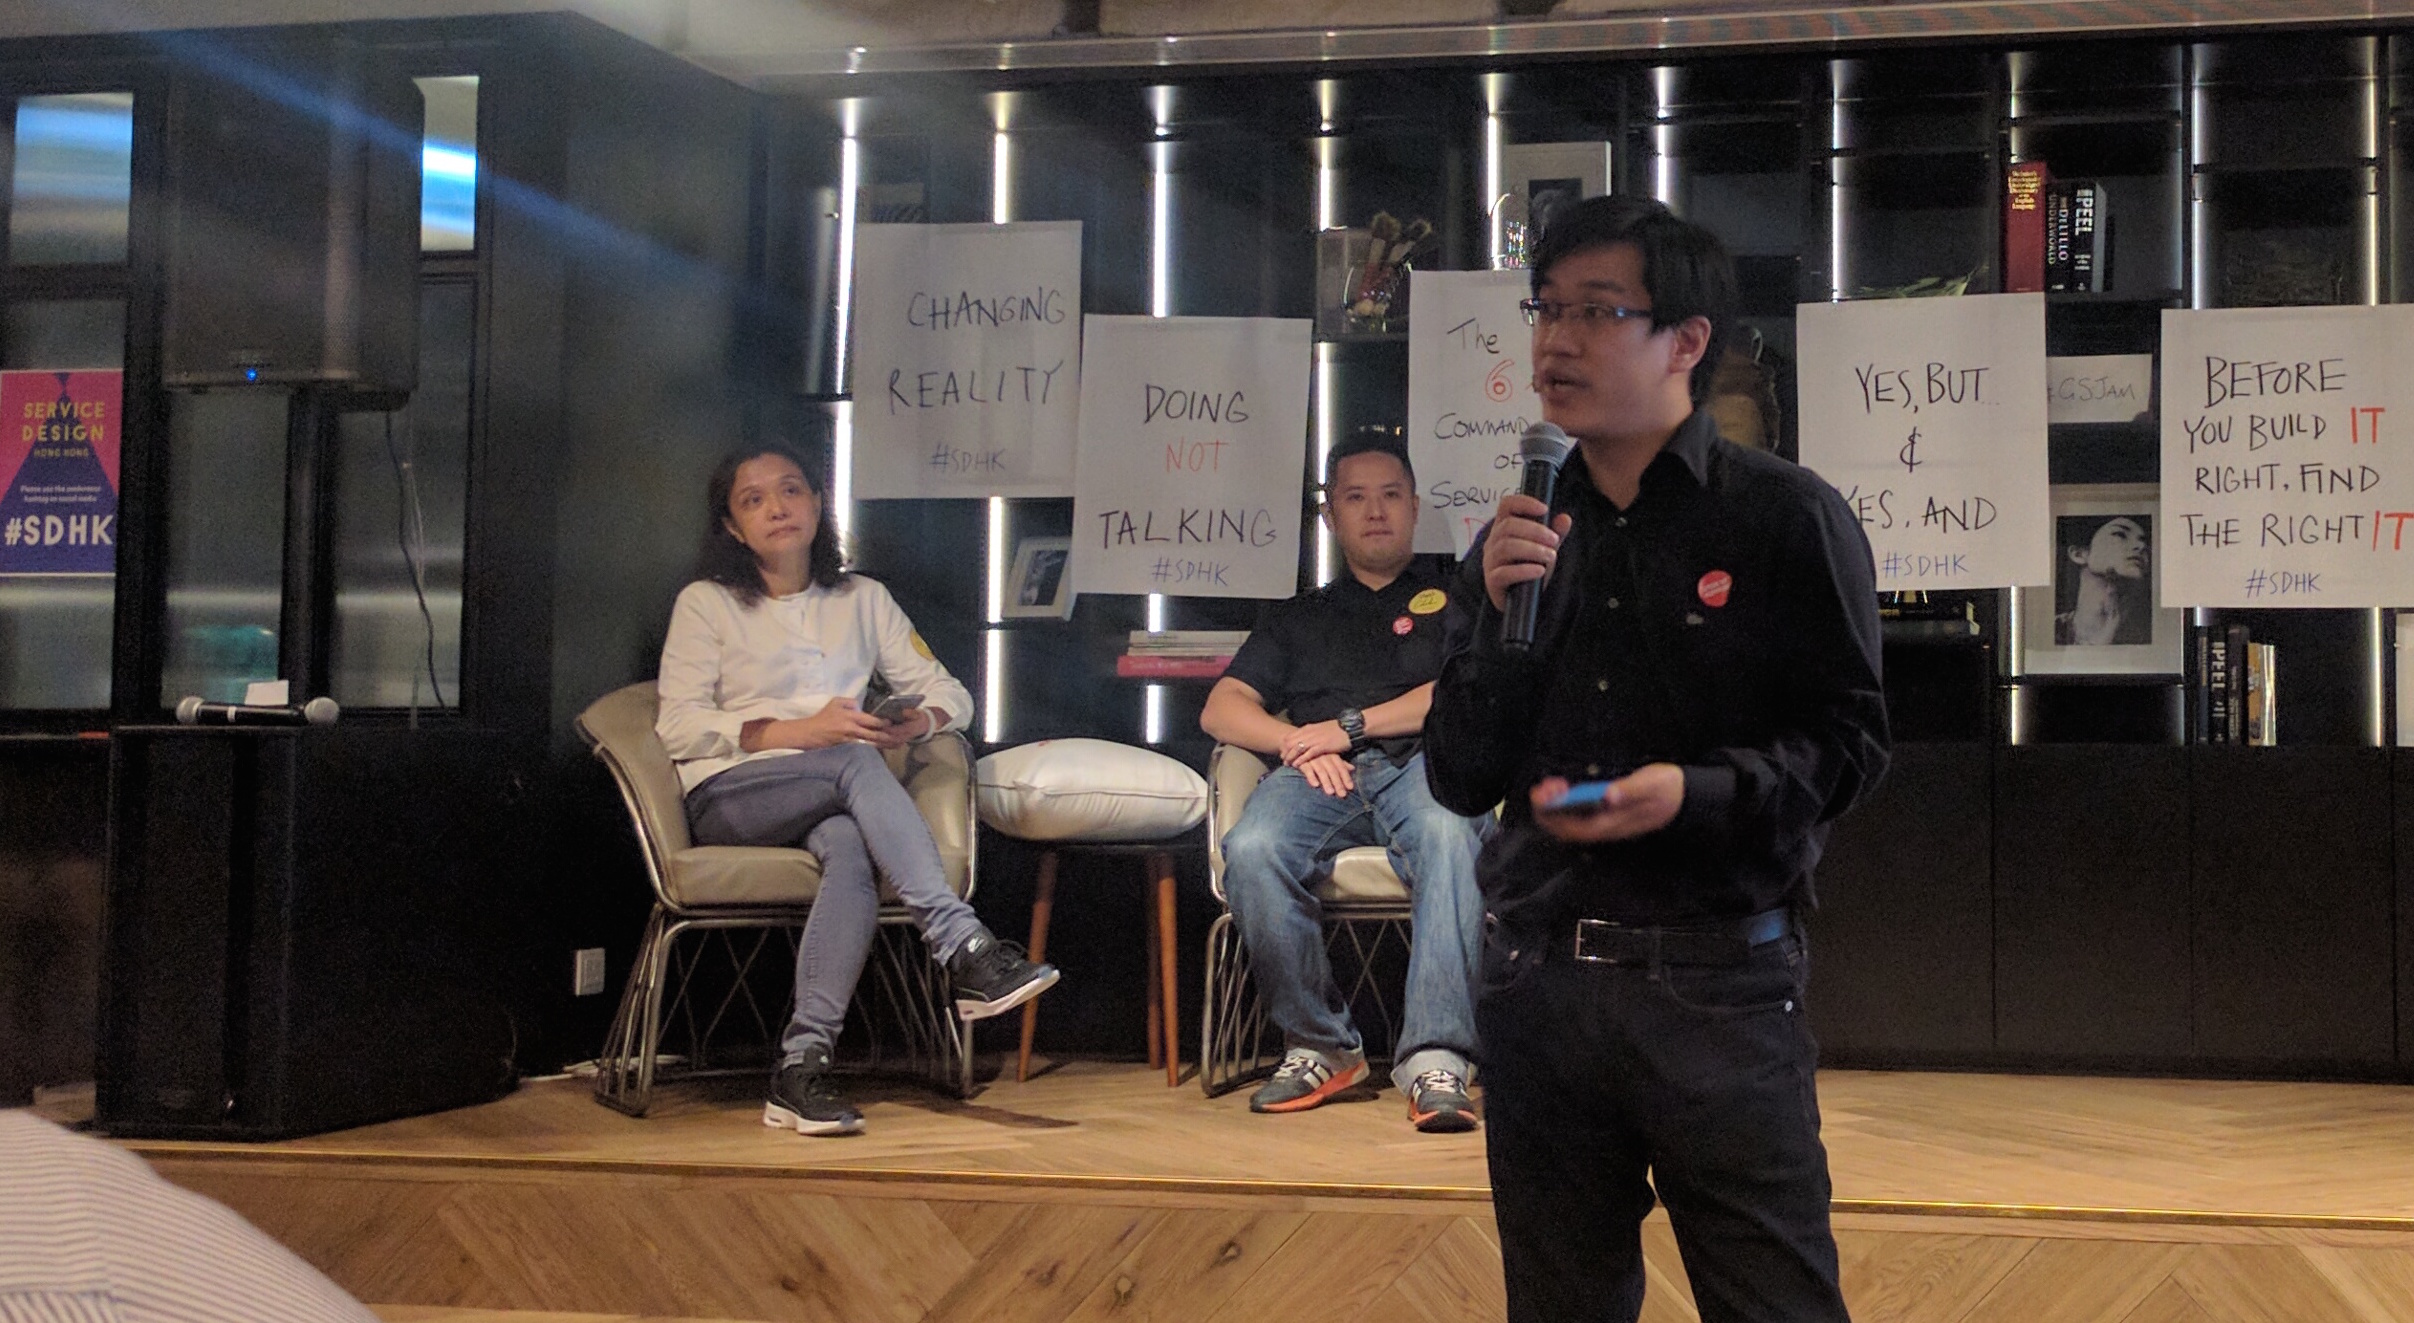 Michael Lai explained his experience designing the service of a teahouse